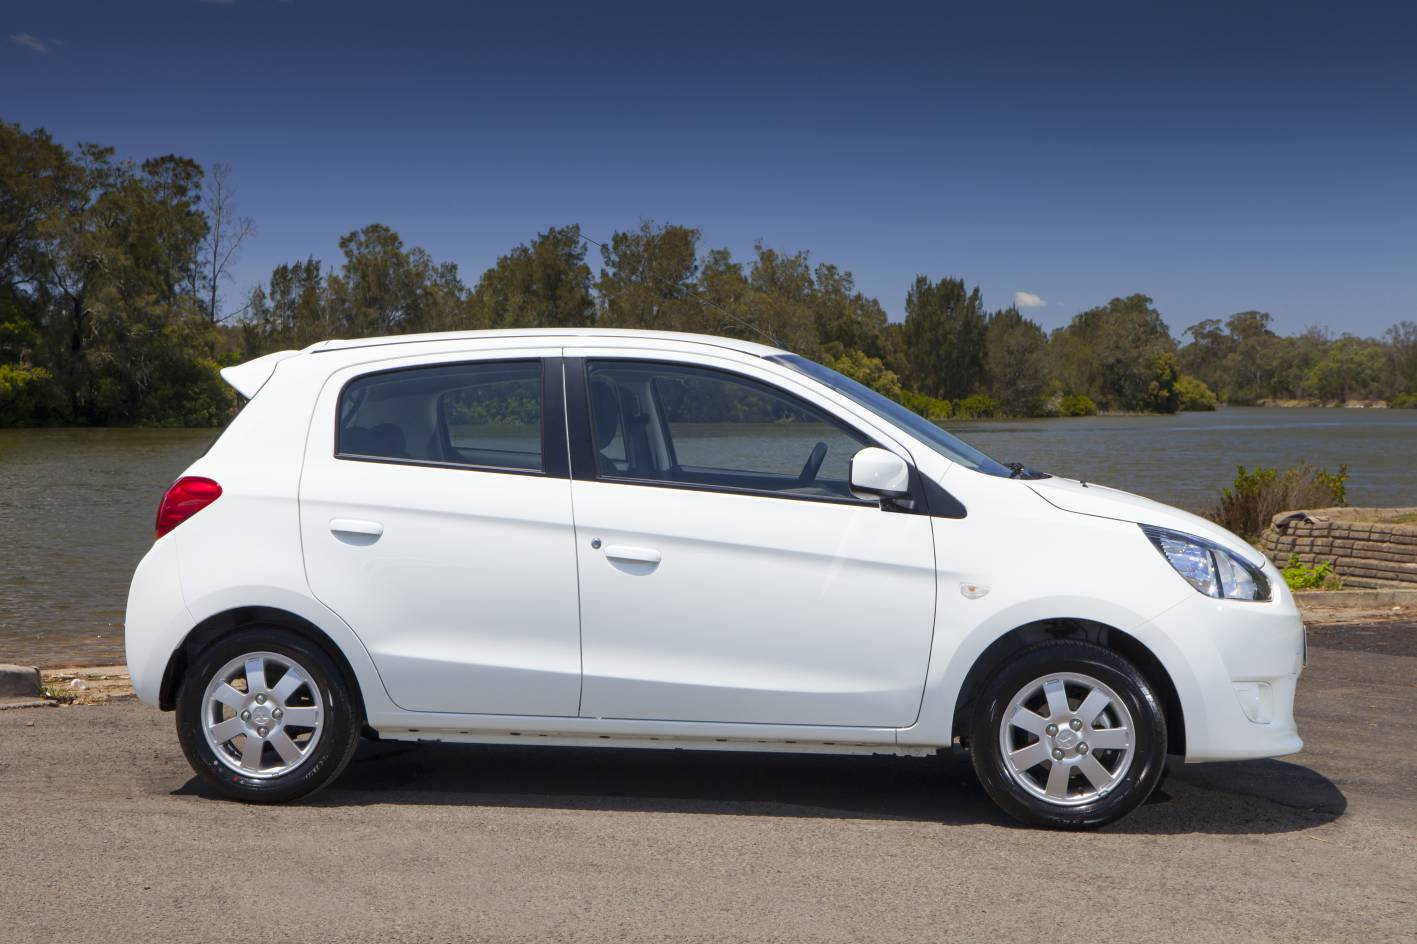 Mitsubishi Mirage Review: 2013 Mirage